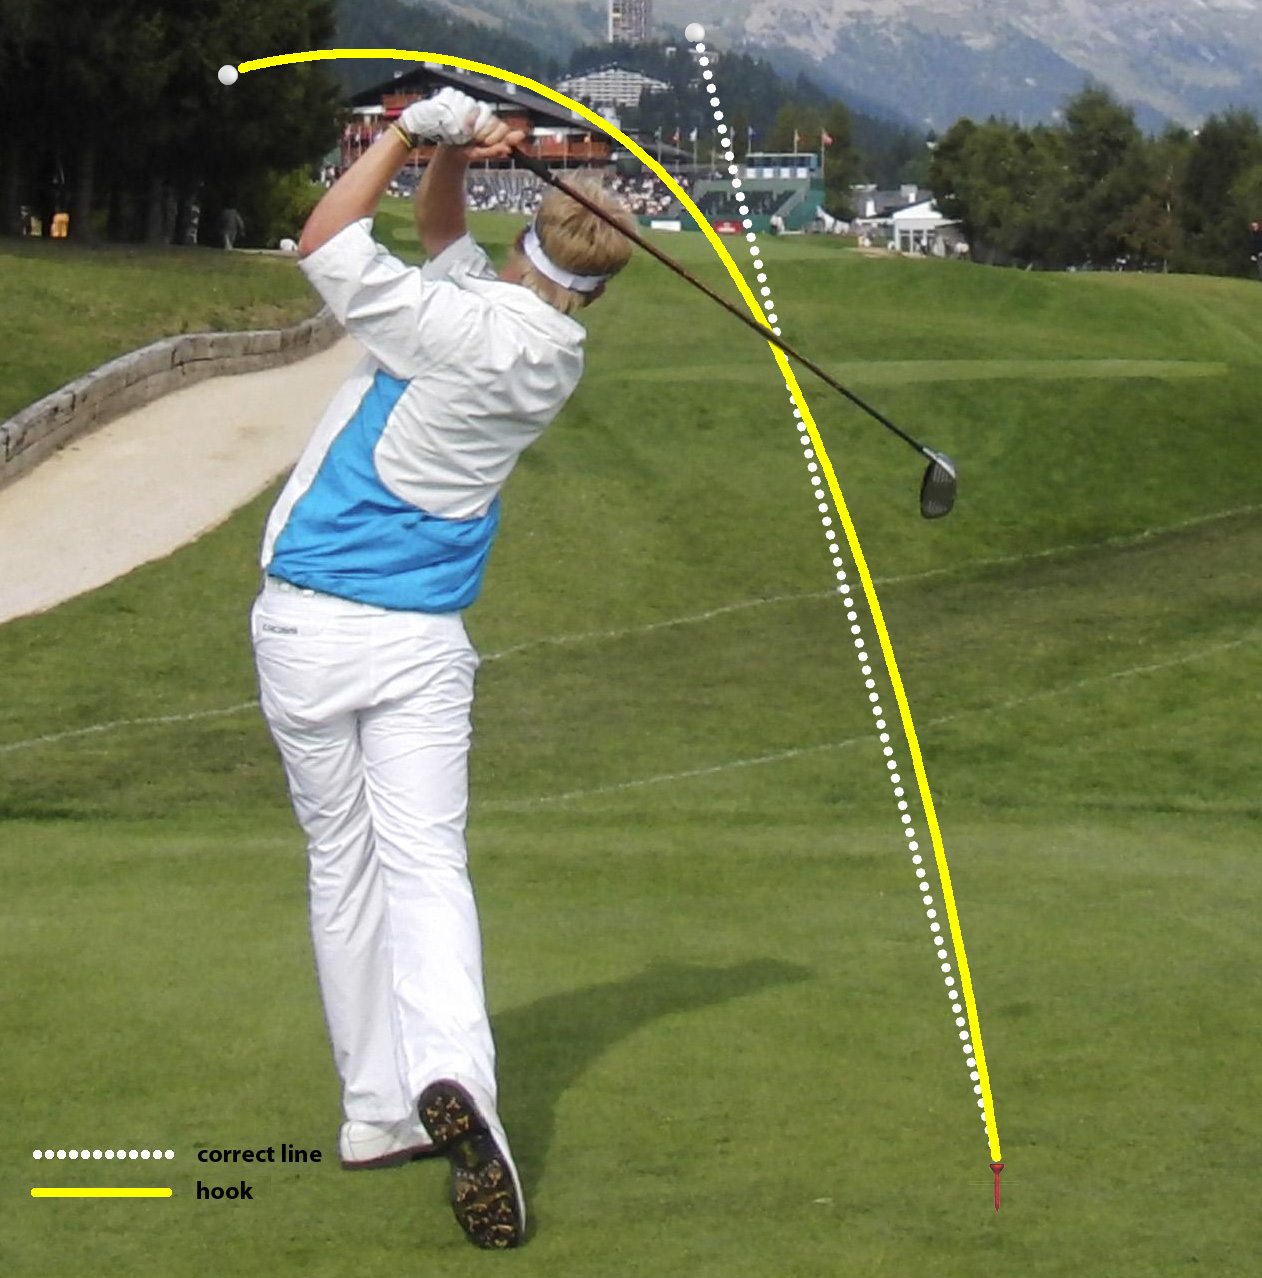 Fig.1 - It only takes a few set up and aligment changes to get that ball going straighter